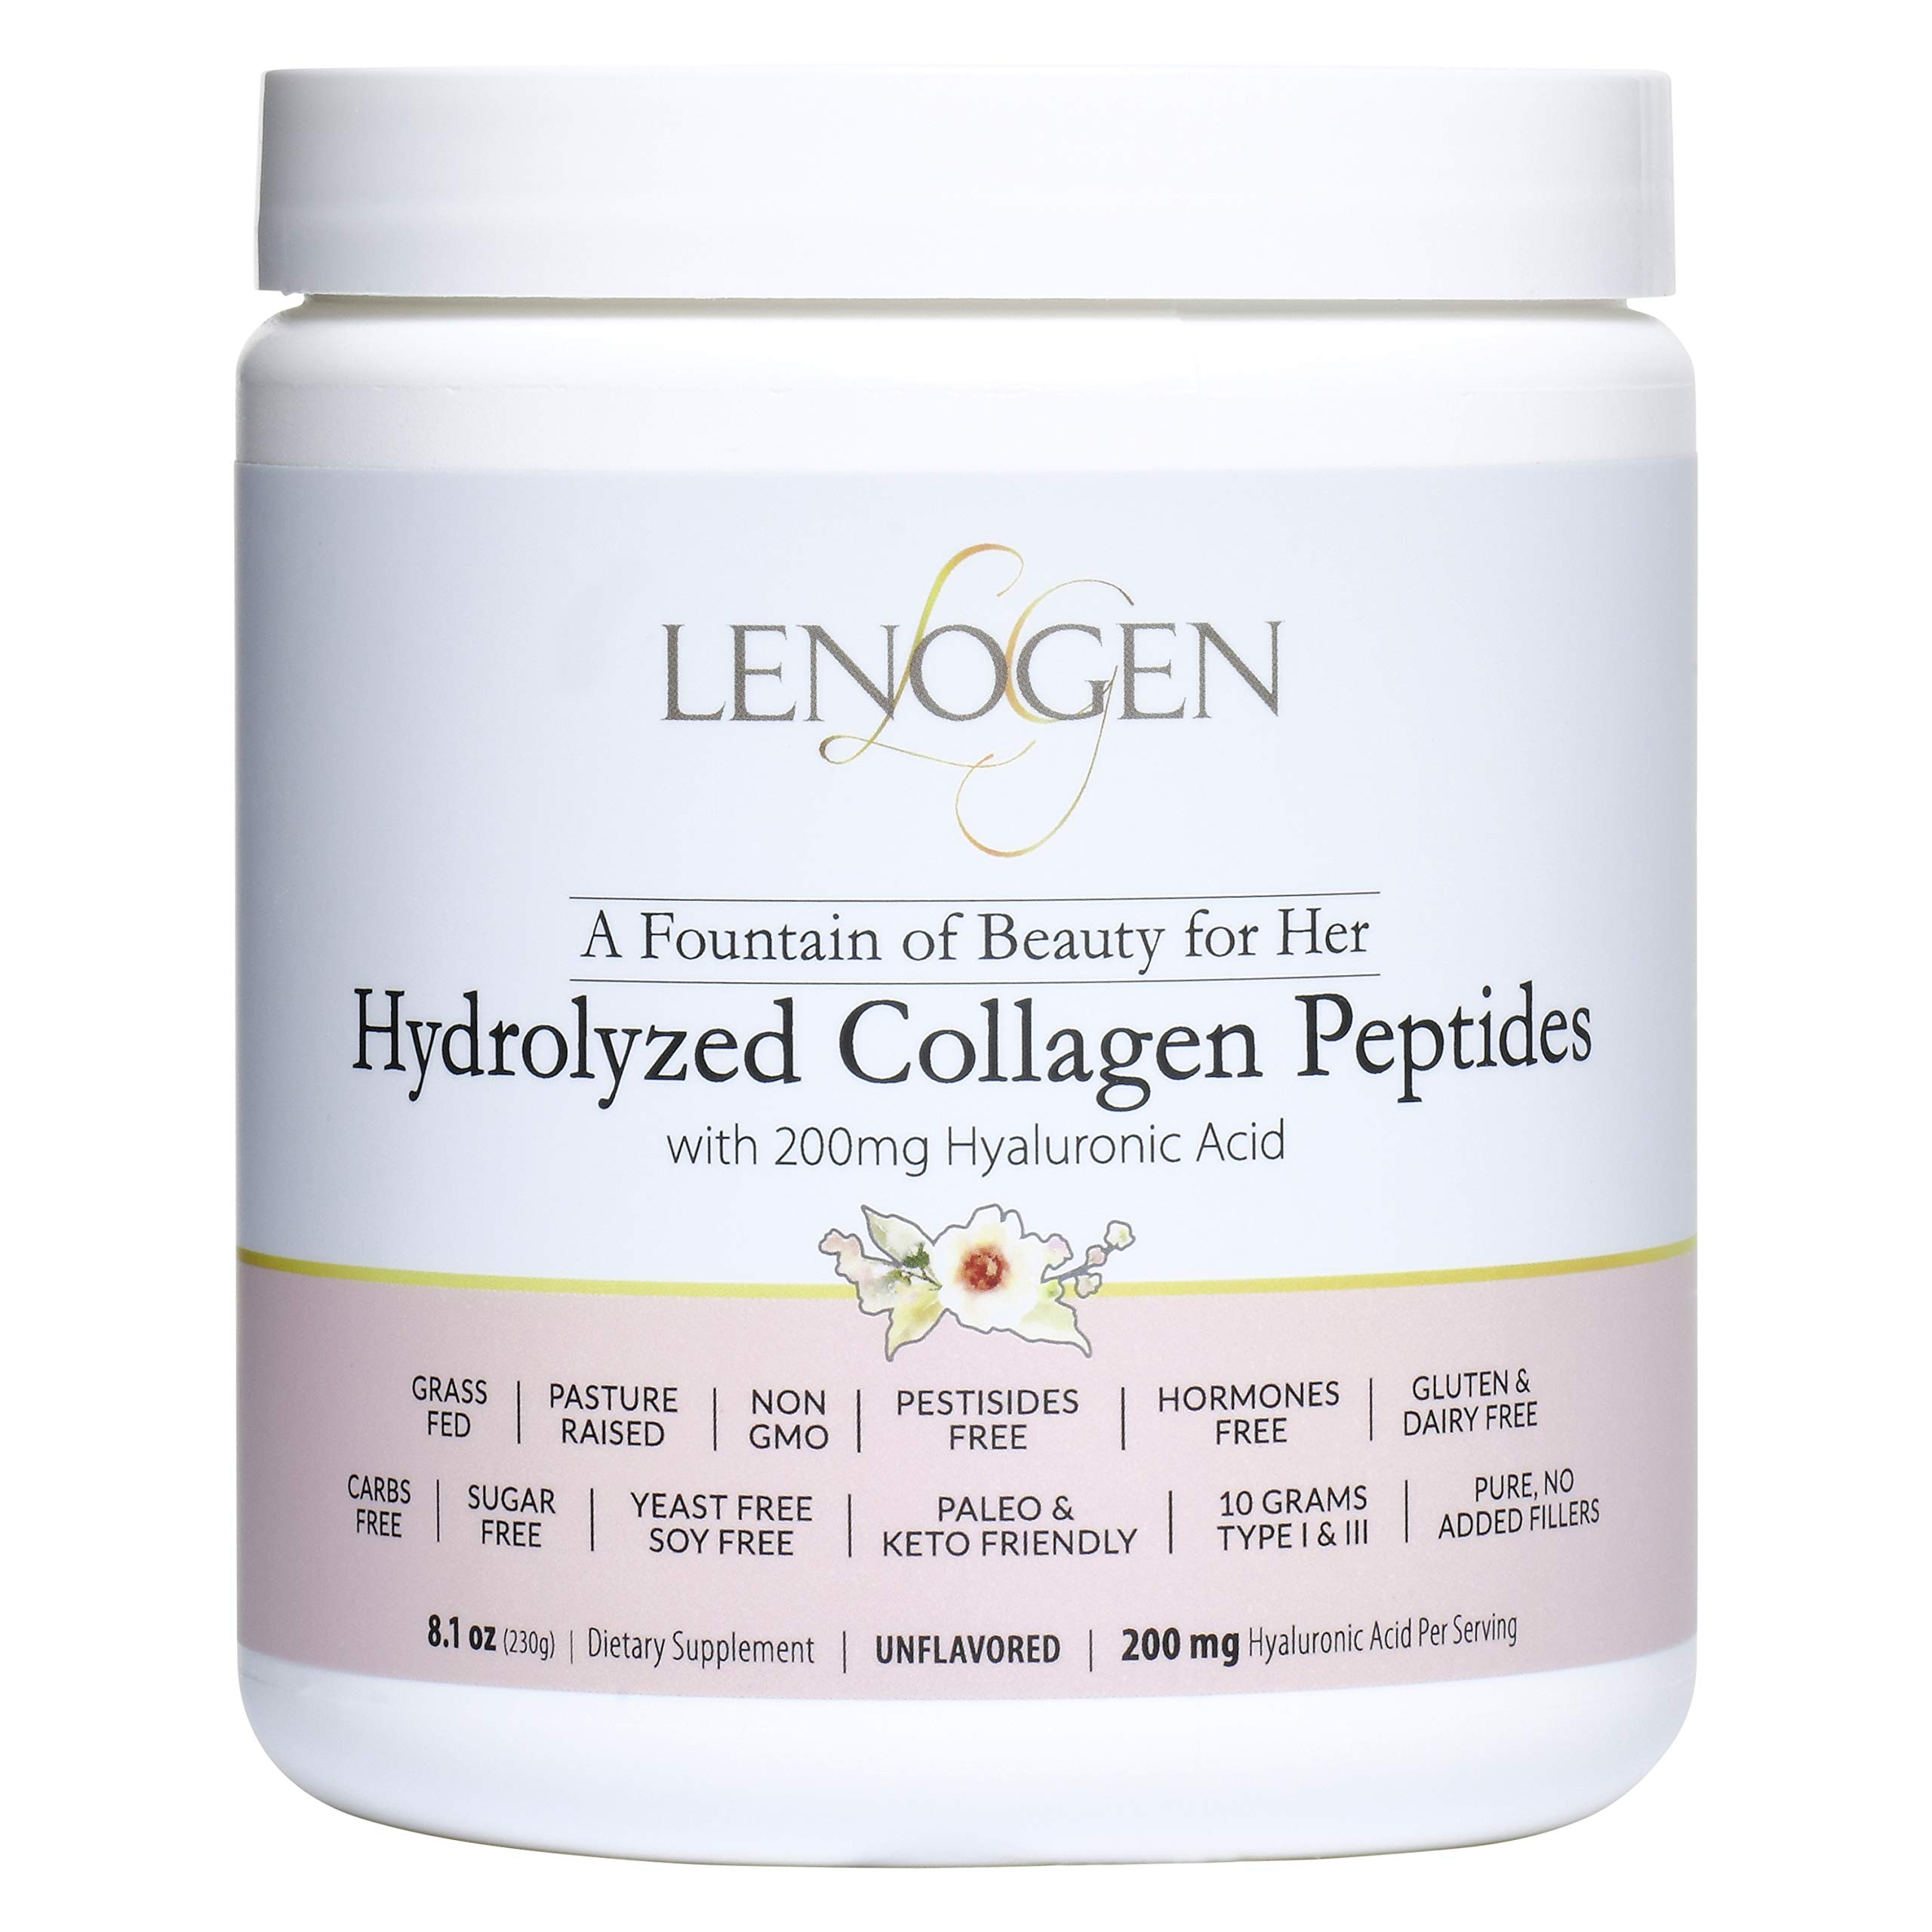 Collagen Powder for Women. Hair Skin & Nails, Grass Fed, Non-GMO, Zero Fillers, Sugar & Carbs Free, Paleo & Keto Diets Friendly, Peptides & Hyaluronic Acid, Bone Broth, 20 Servings-Unflavored.